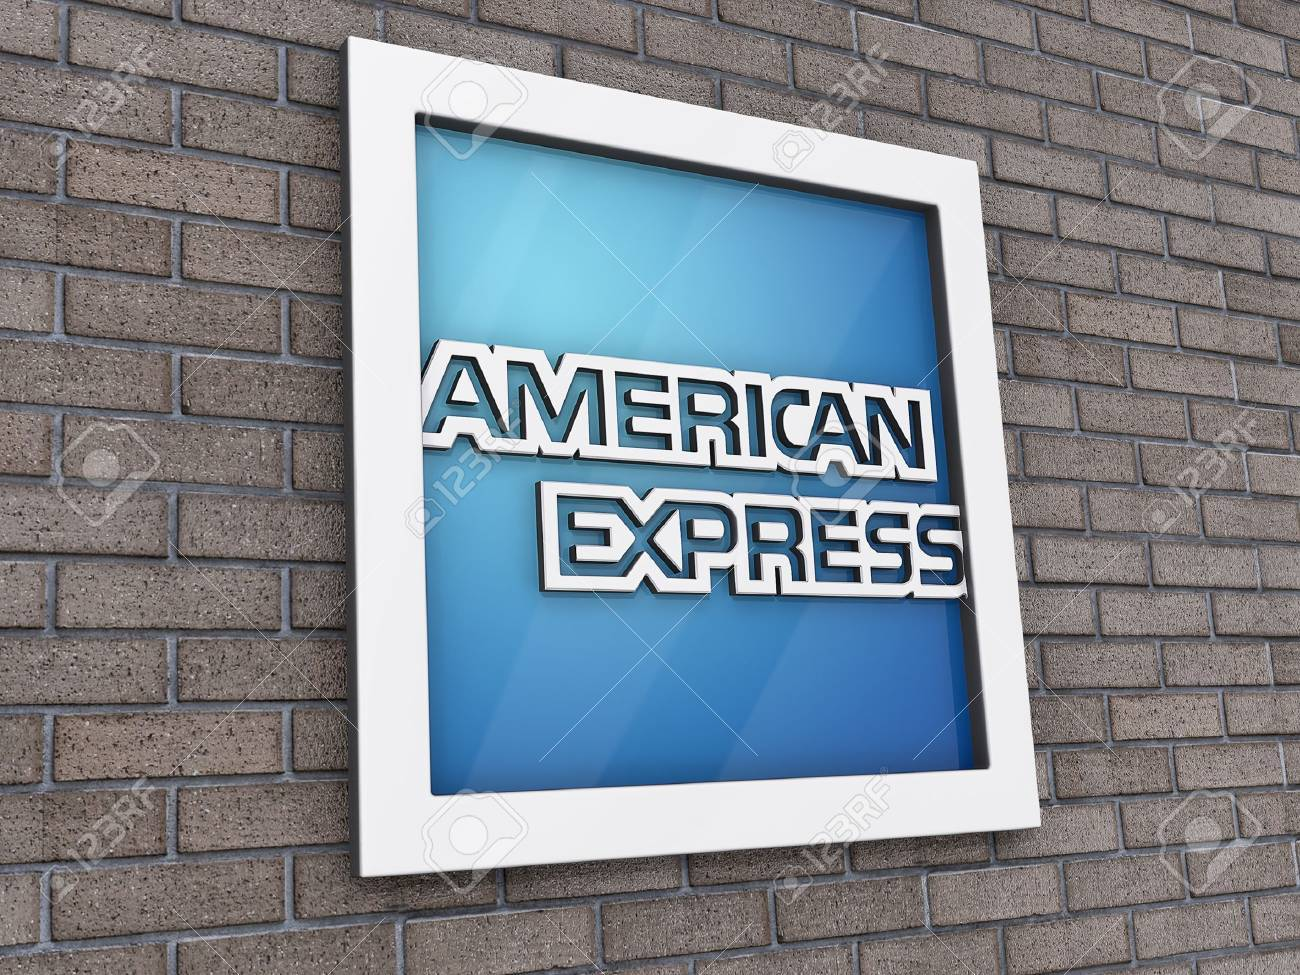 Vancouver, British Columbia, Canada - July 14, 2012 - American Express Logo on a brick wall background. Stock Photo - 14419802